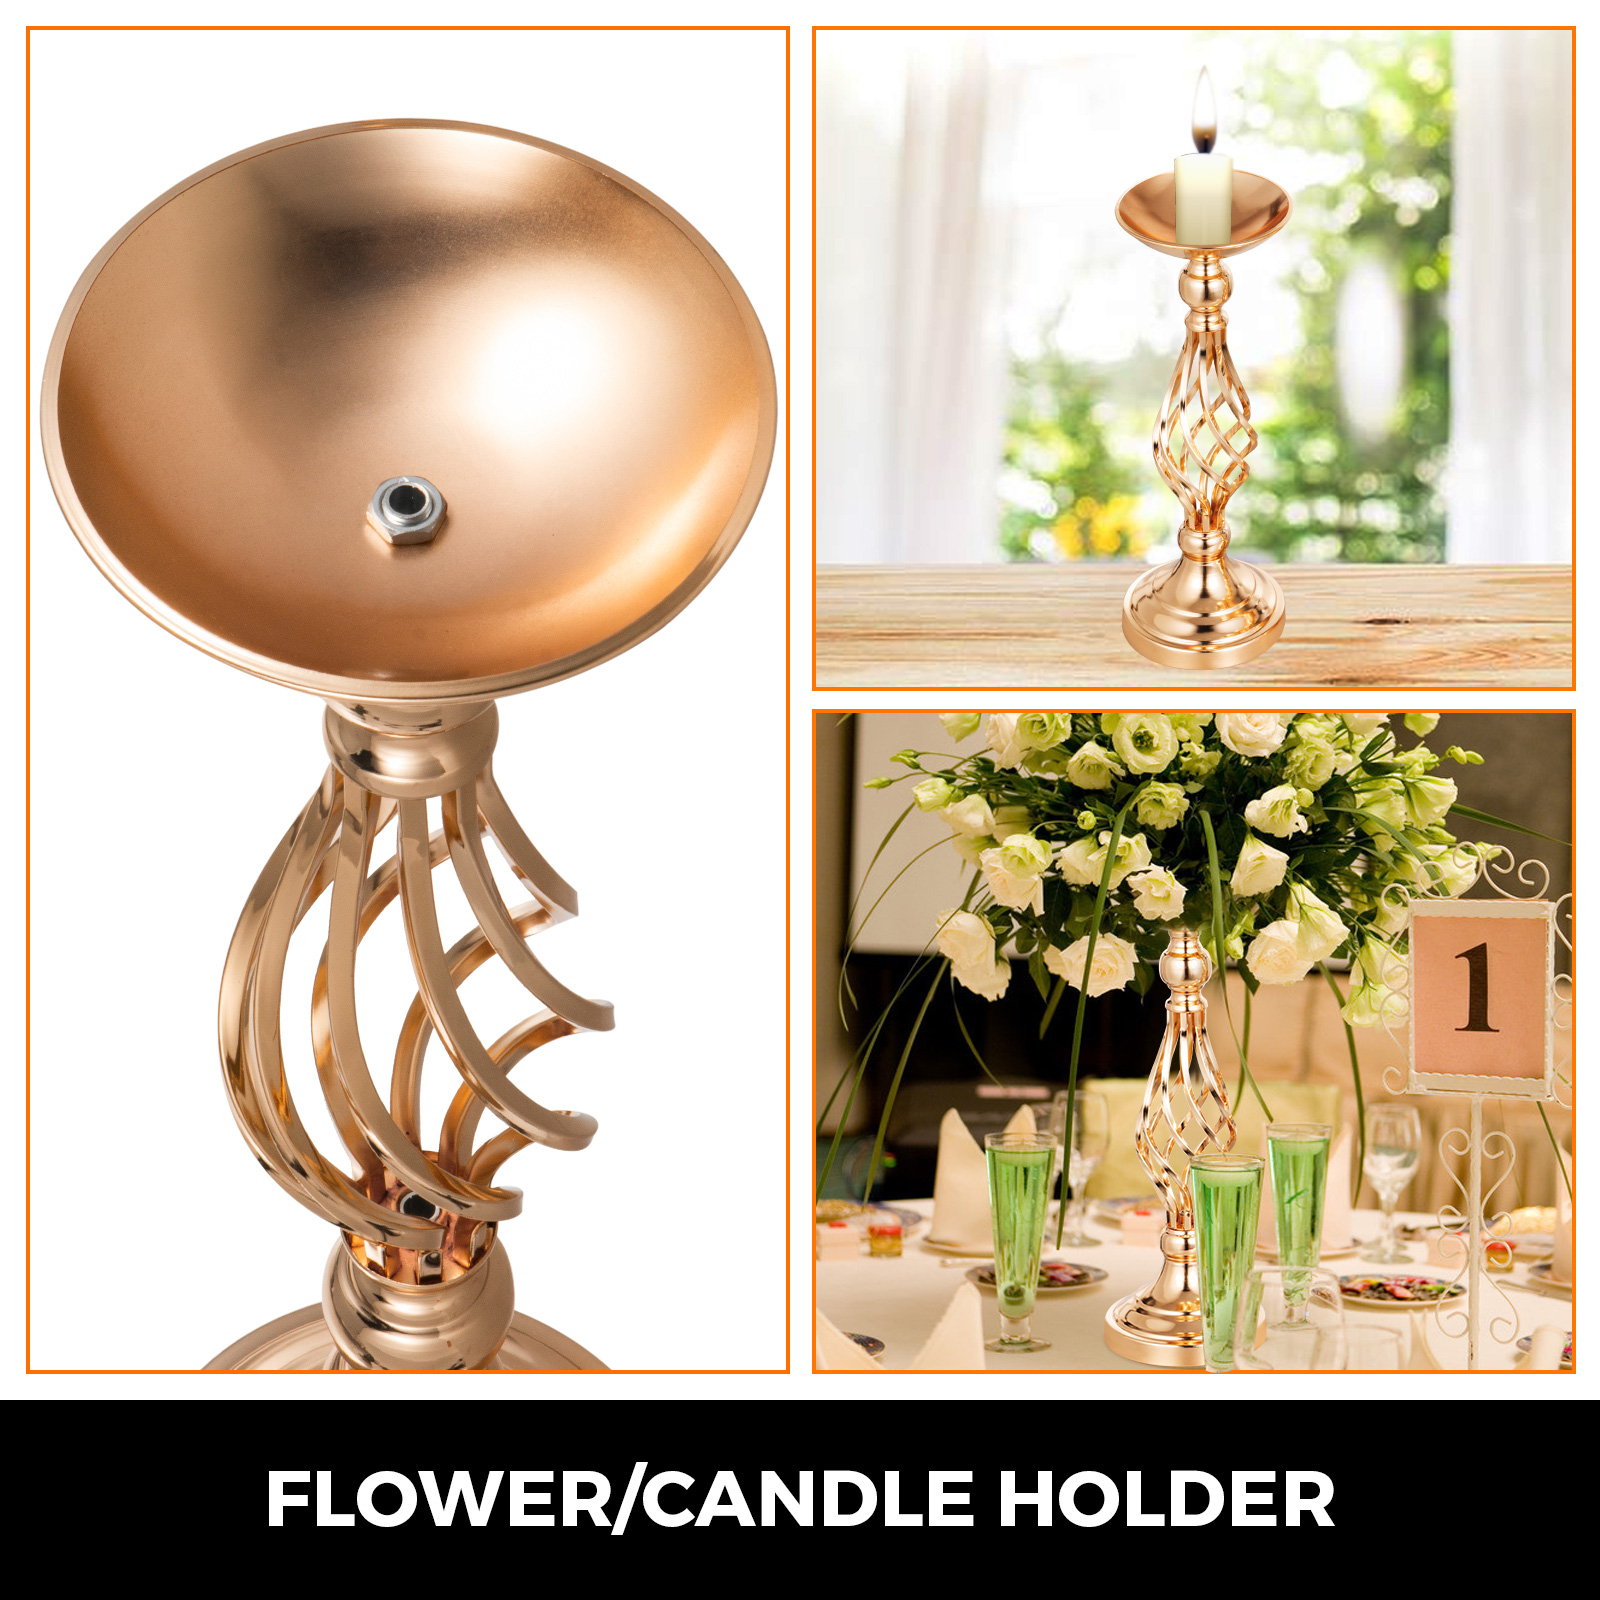 Flower-Rack-for-Wedding-Metal-Candle-Stand-4-11pcs-Centerpiece-Flower-Vase thumbnail 75